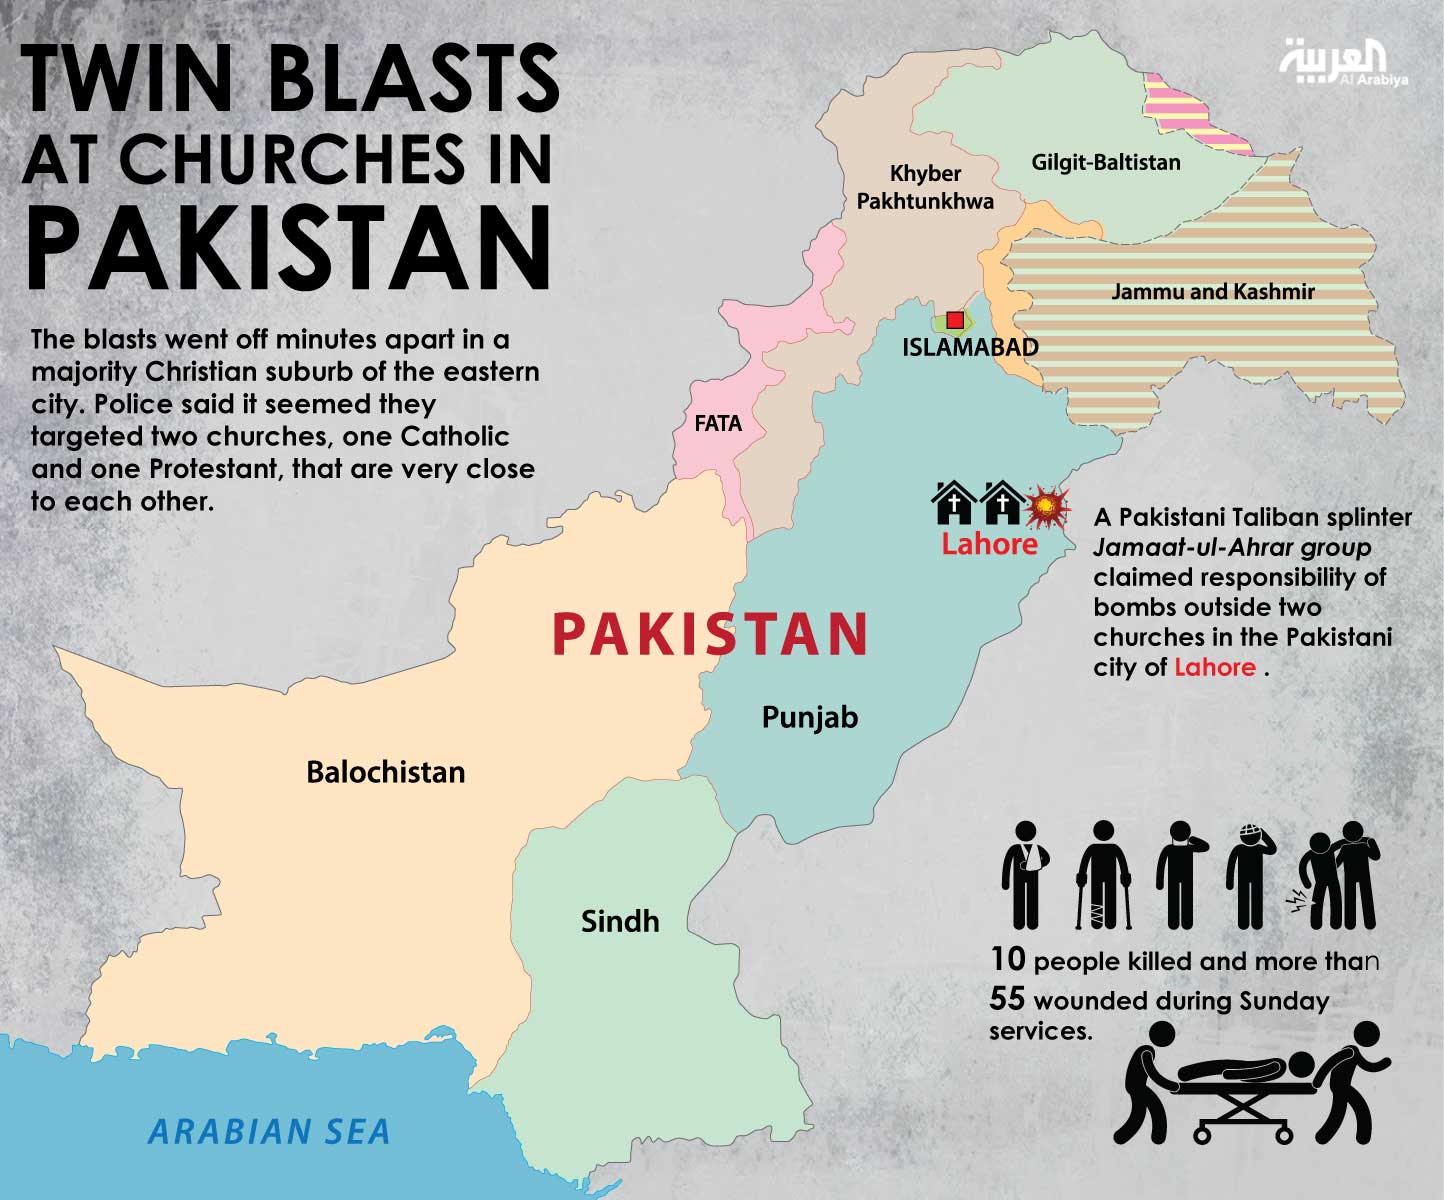 Infographic: Twin blasts at churches in Pakistan